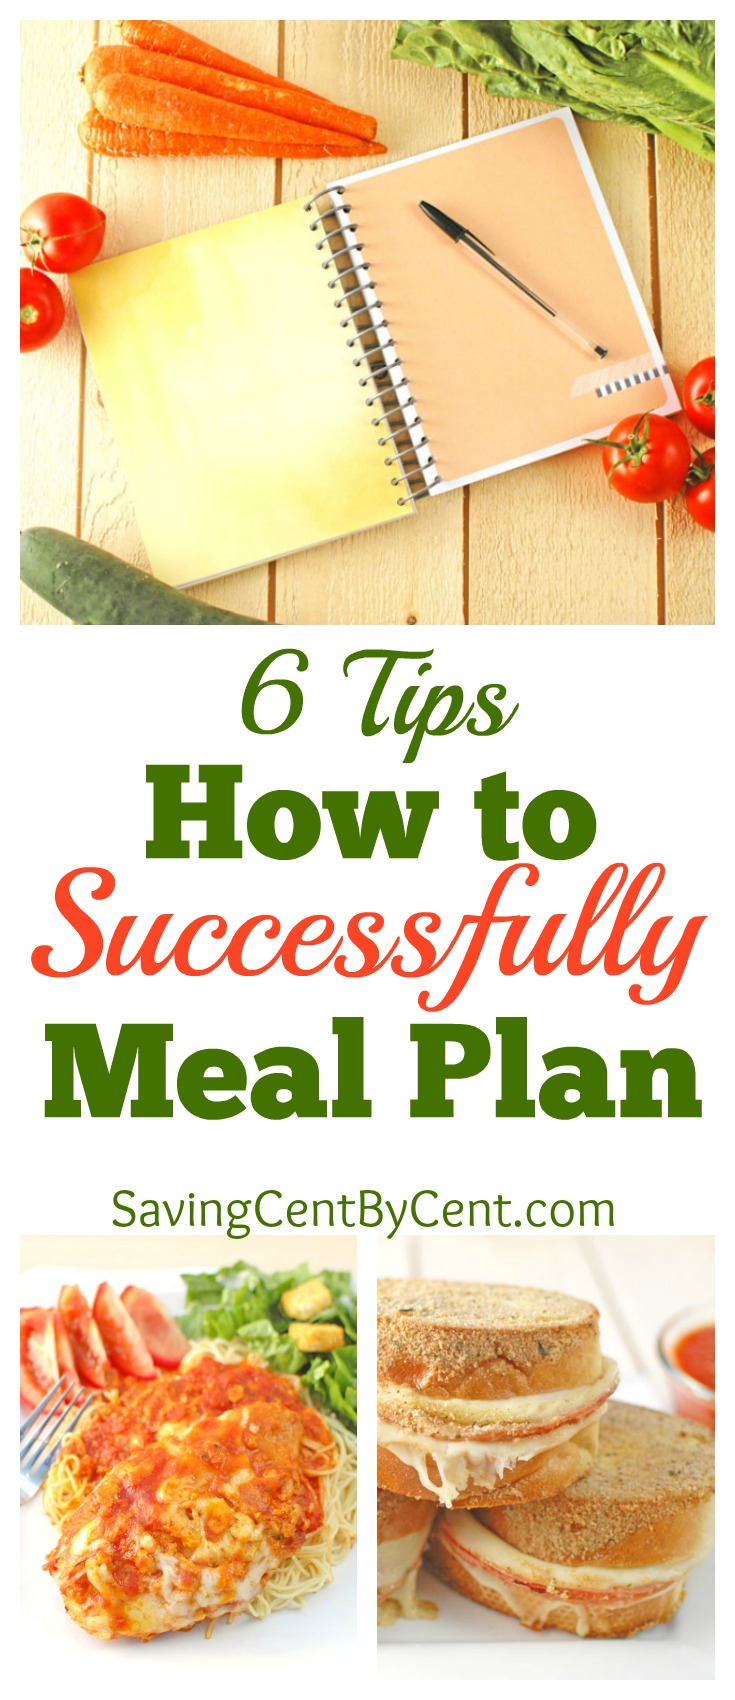 6 Tips How to Successfully Meal Plan